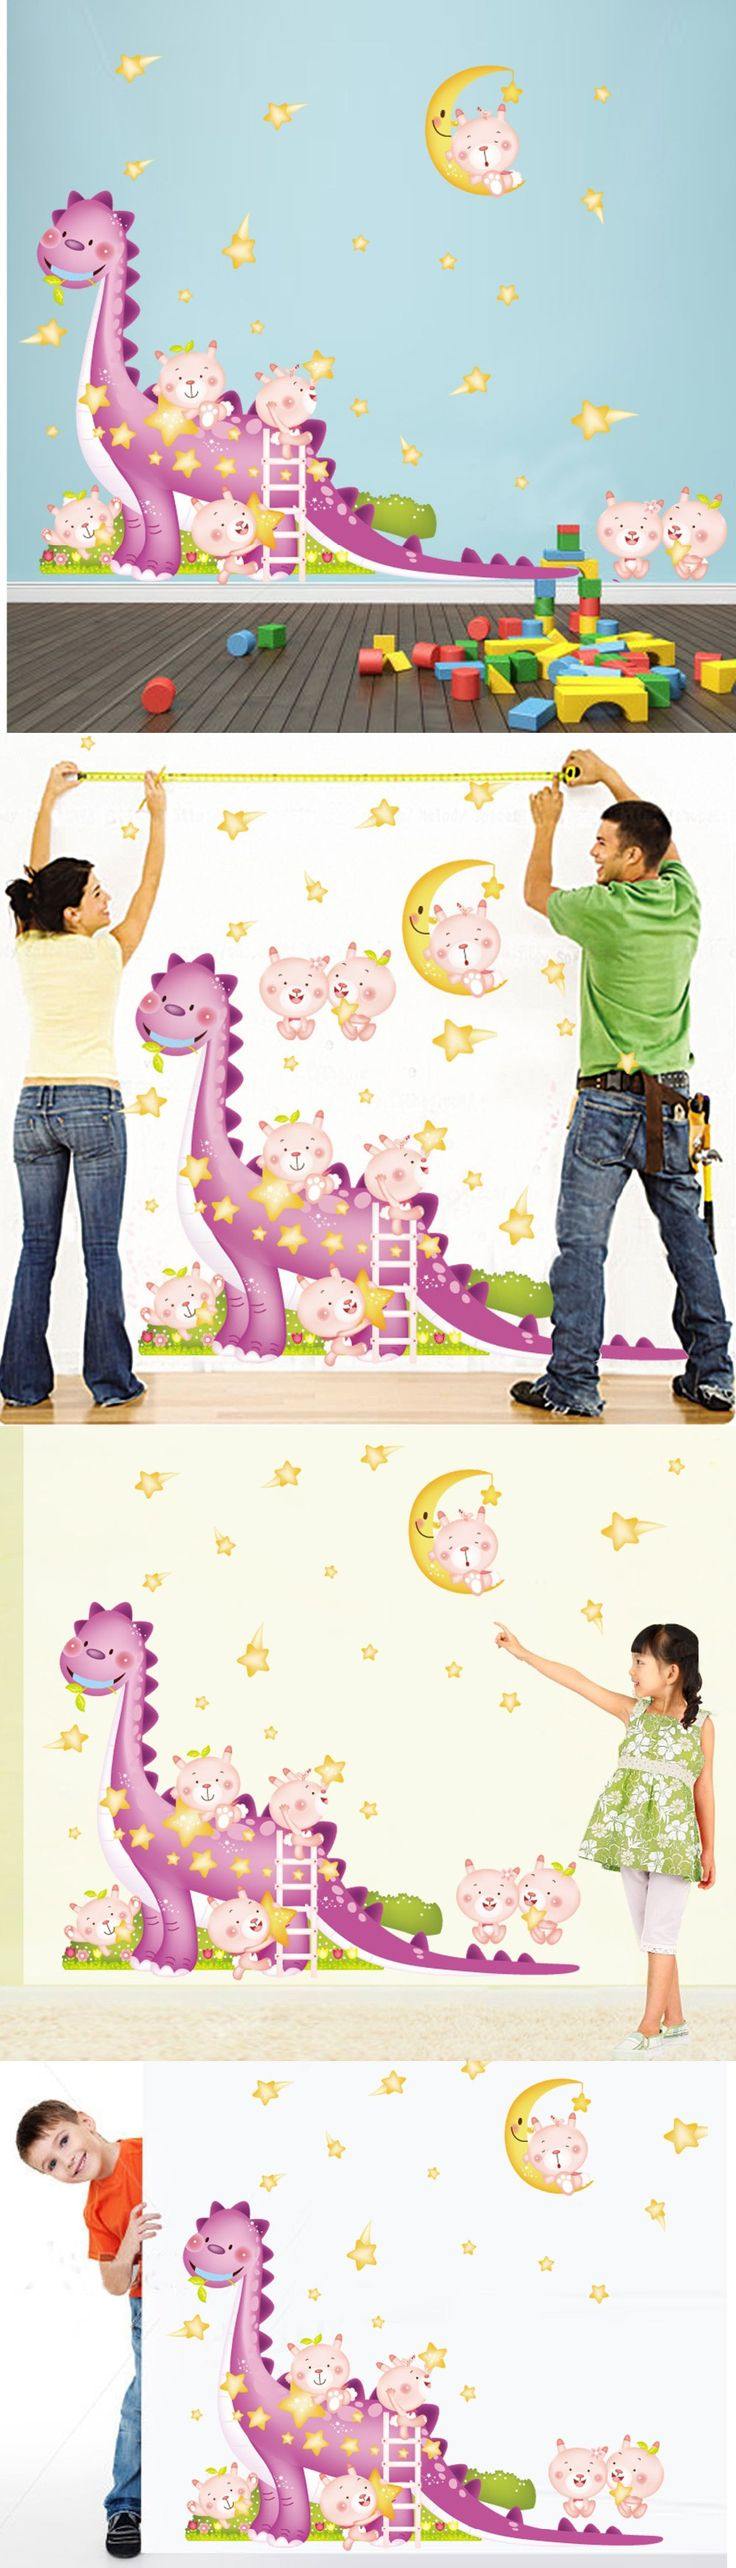 best 25 dinosaur wall stickers ideas on pinterest dinosaur wall cartoon dinosaur wall stickers home decor adesivo de parede living room bedroom tv background pvc kids wall mural